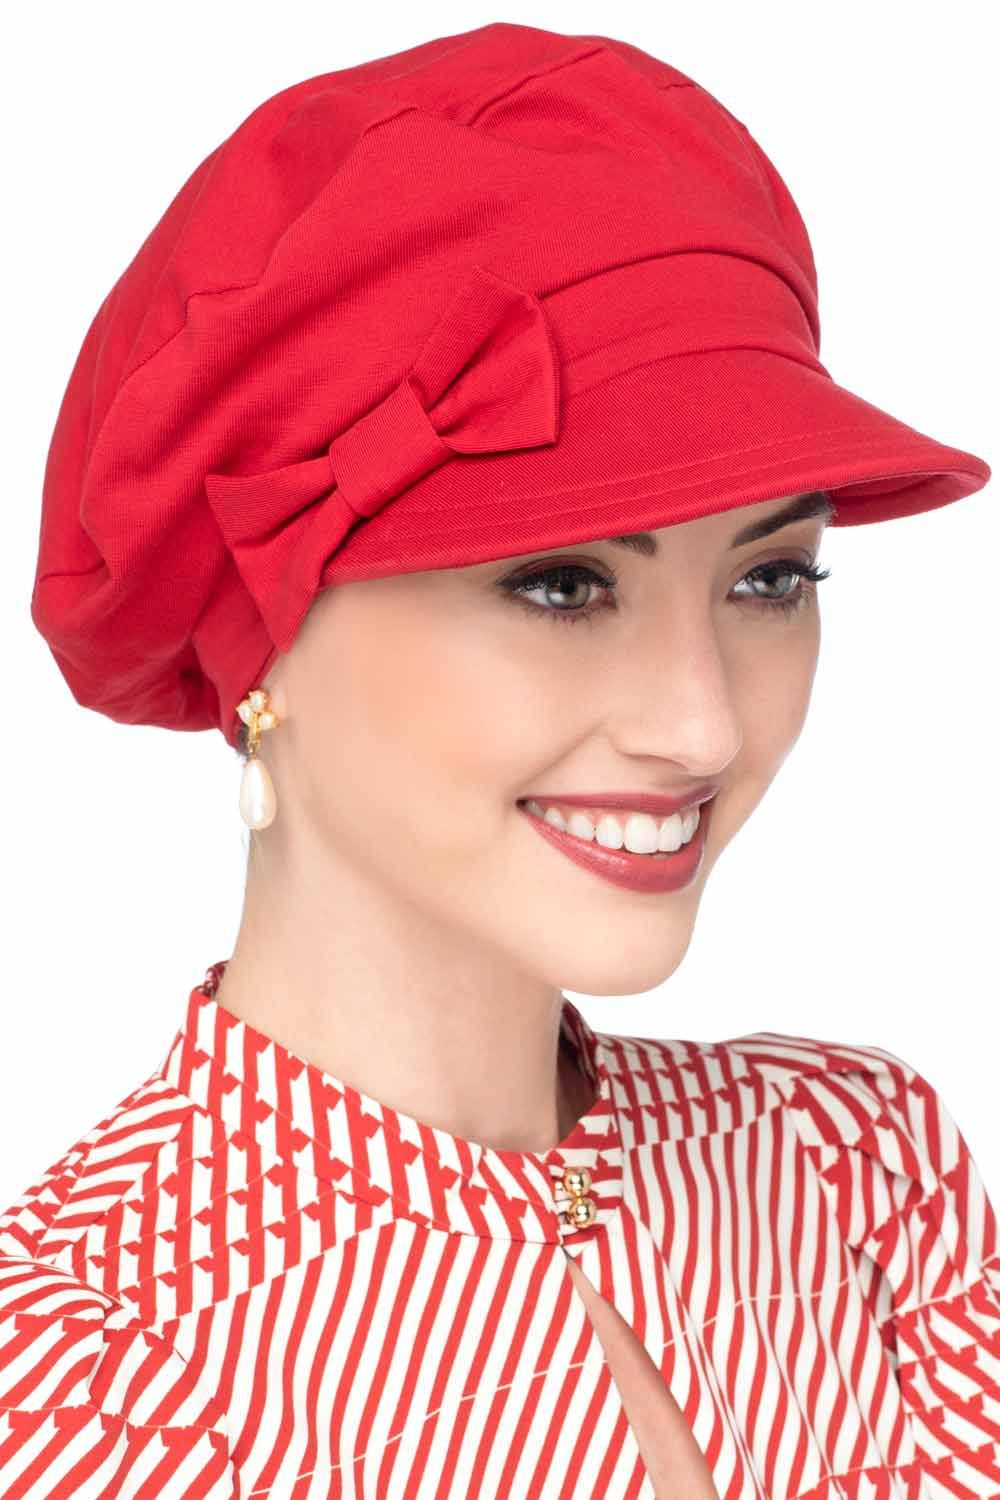 WETOO Cap and Scarf Set for Women Newsboy Cap with Scarf Double Loop Headwear for Chemo Hair Loss